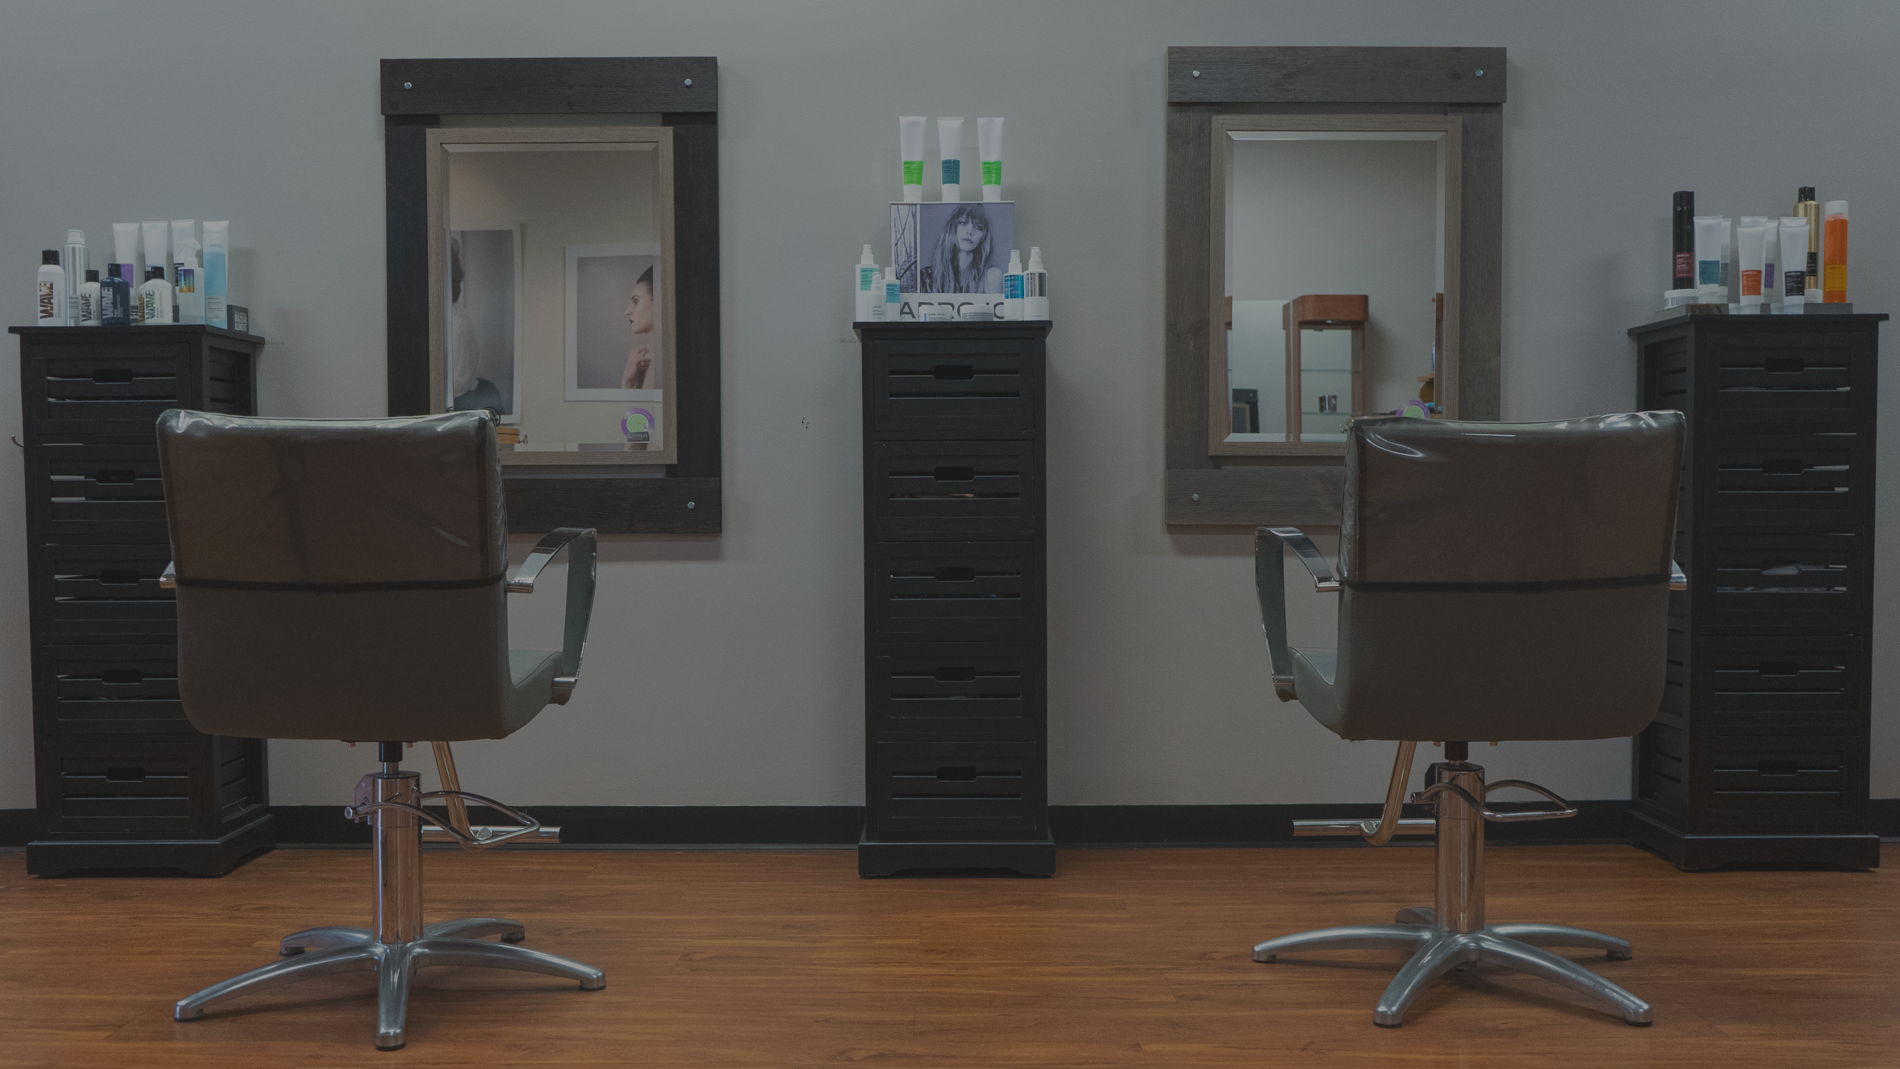 Salon Image of chairs and mirror.